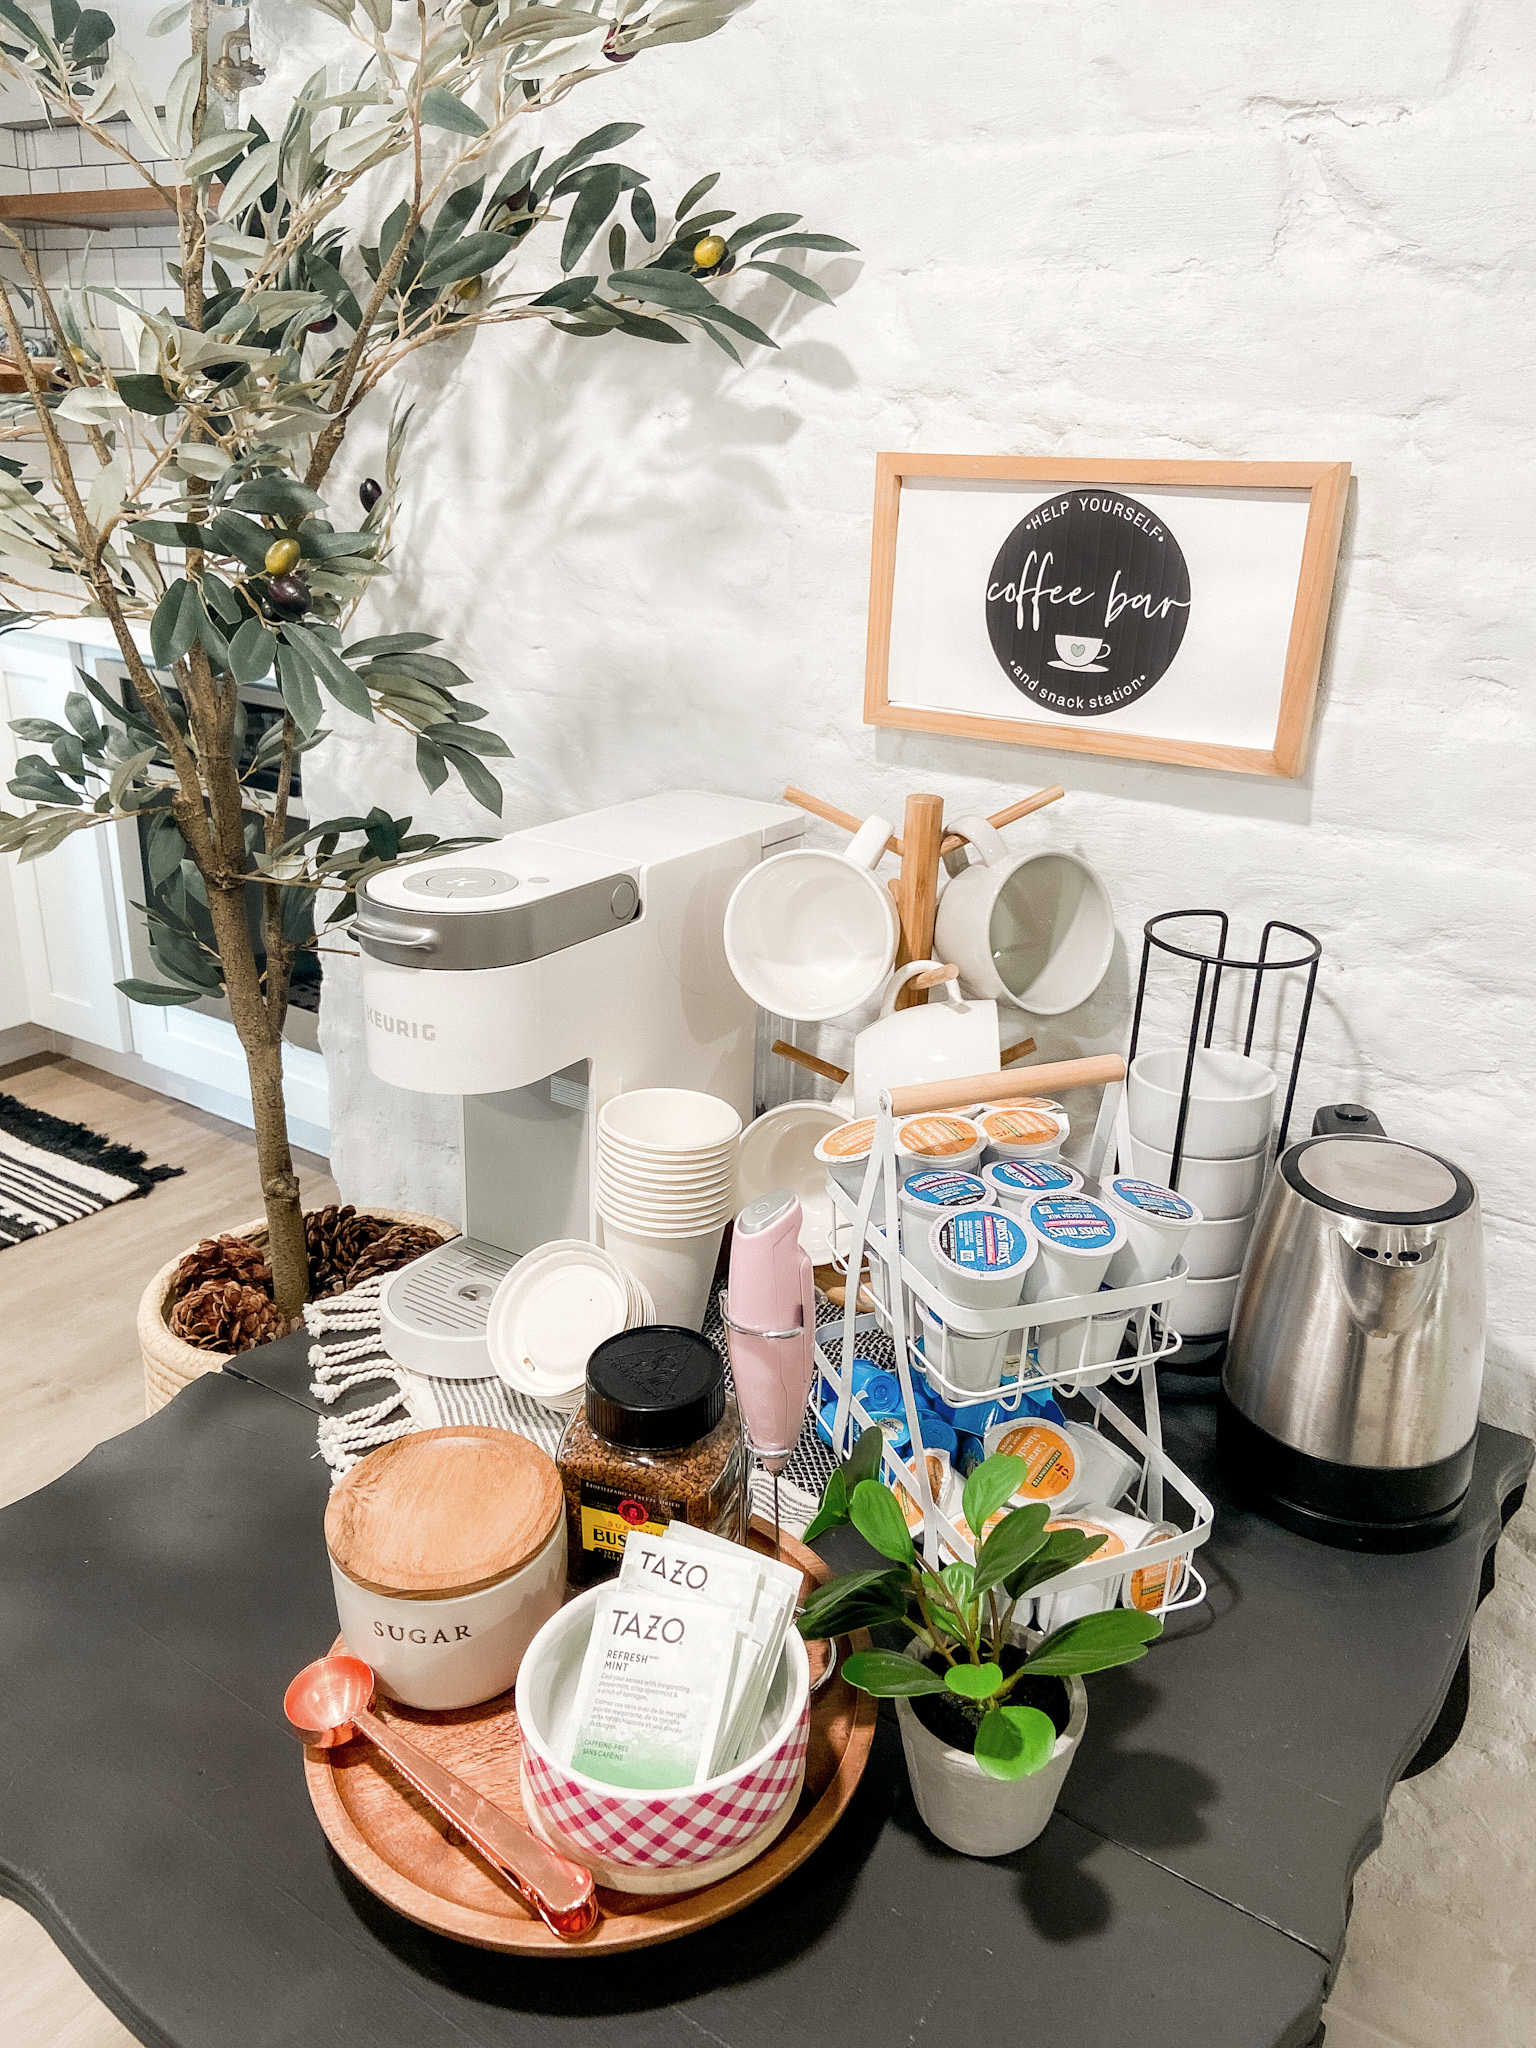 Coffee and Snack Bar Cart Upcycle. Create a beverage and snack station for guests by painting a vintage cart and giving it new life!